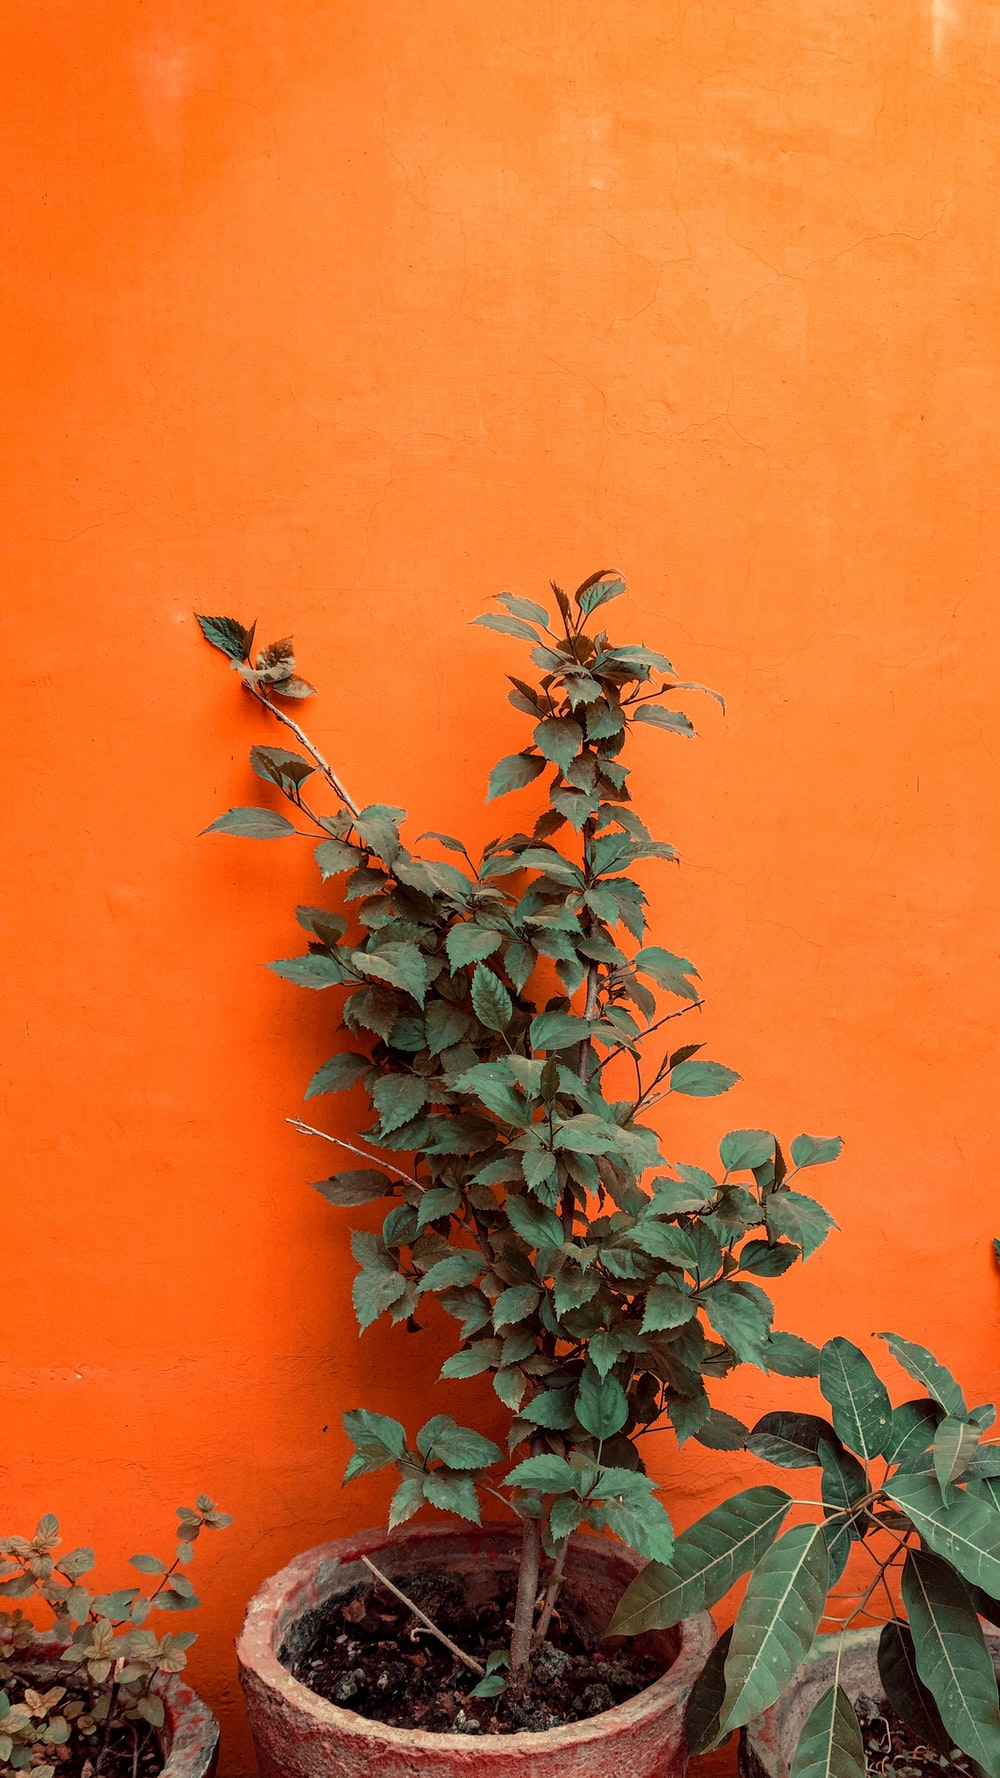 green and white plant on orange wall